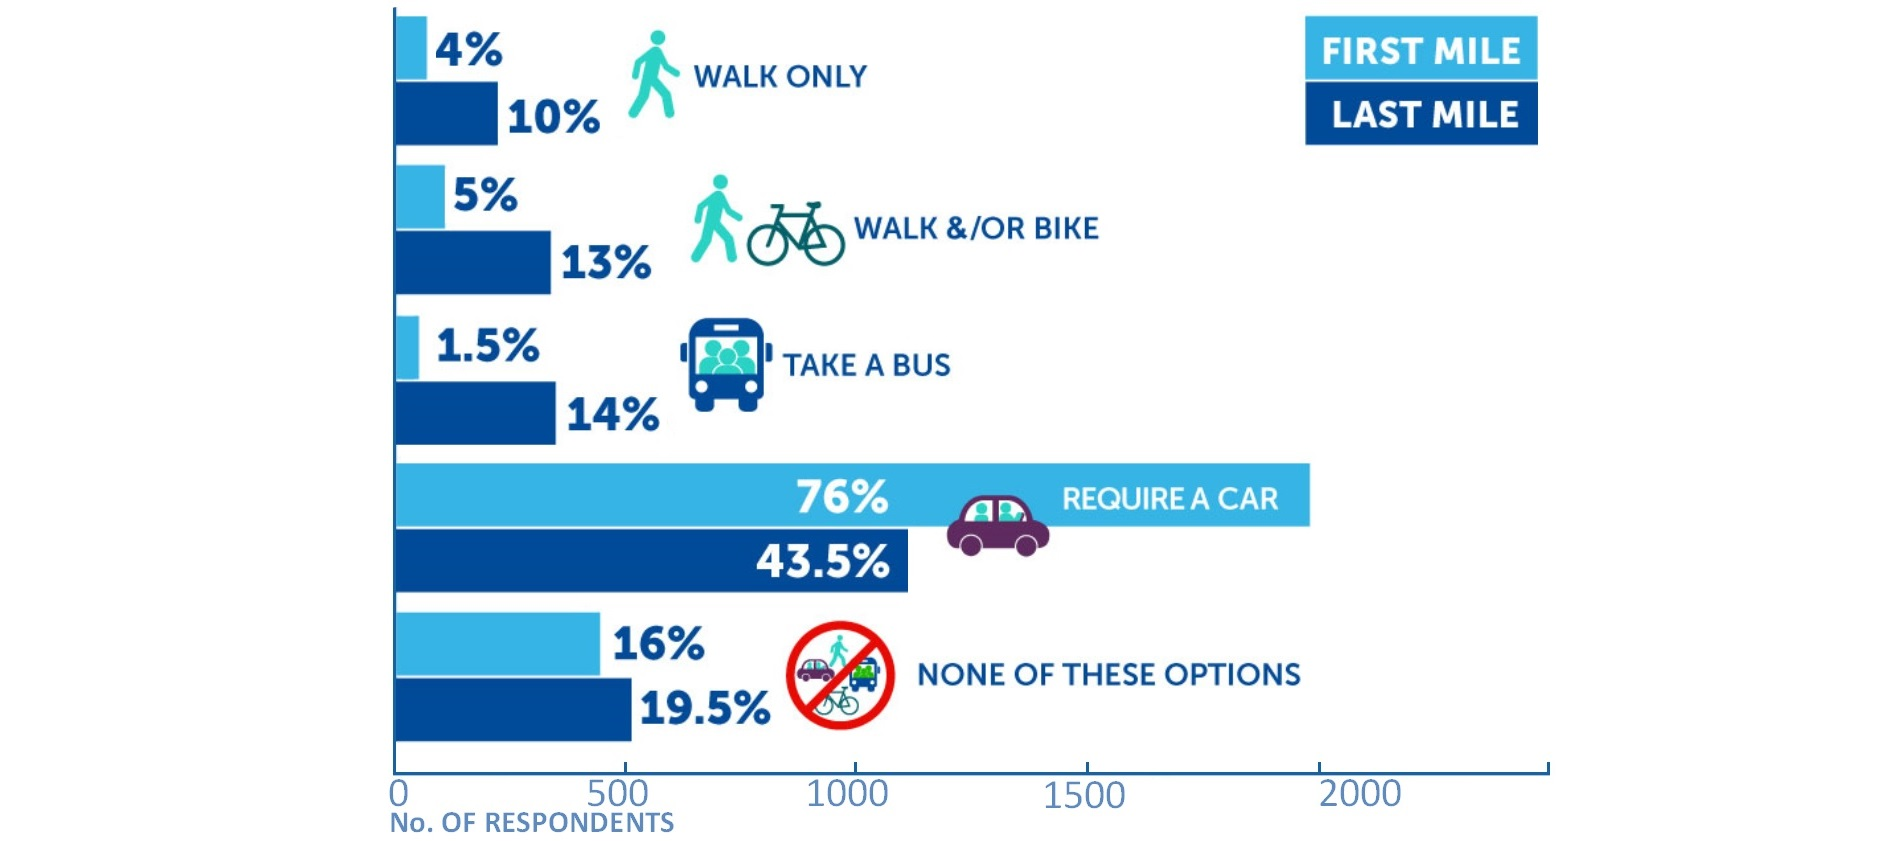 Infographics: How respondents envision getting to transit station from their home (first mile), and how they would get from the station to their destination (last mile).